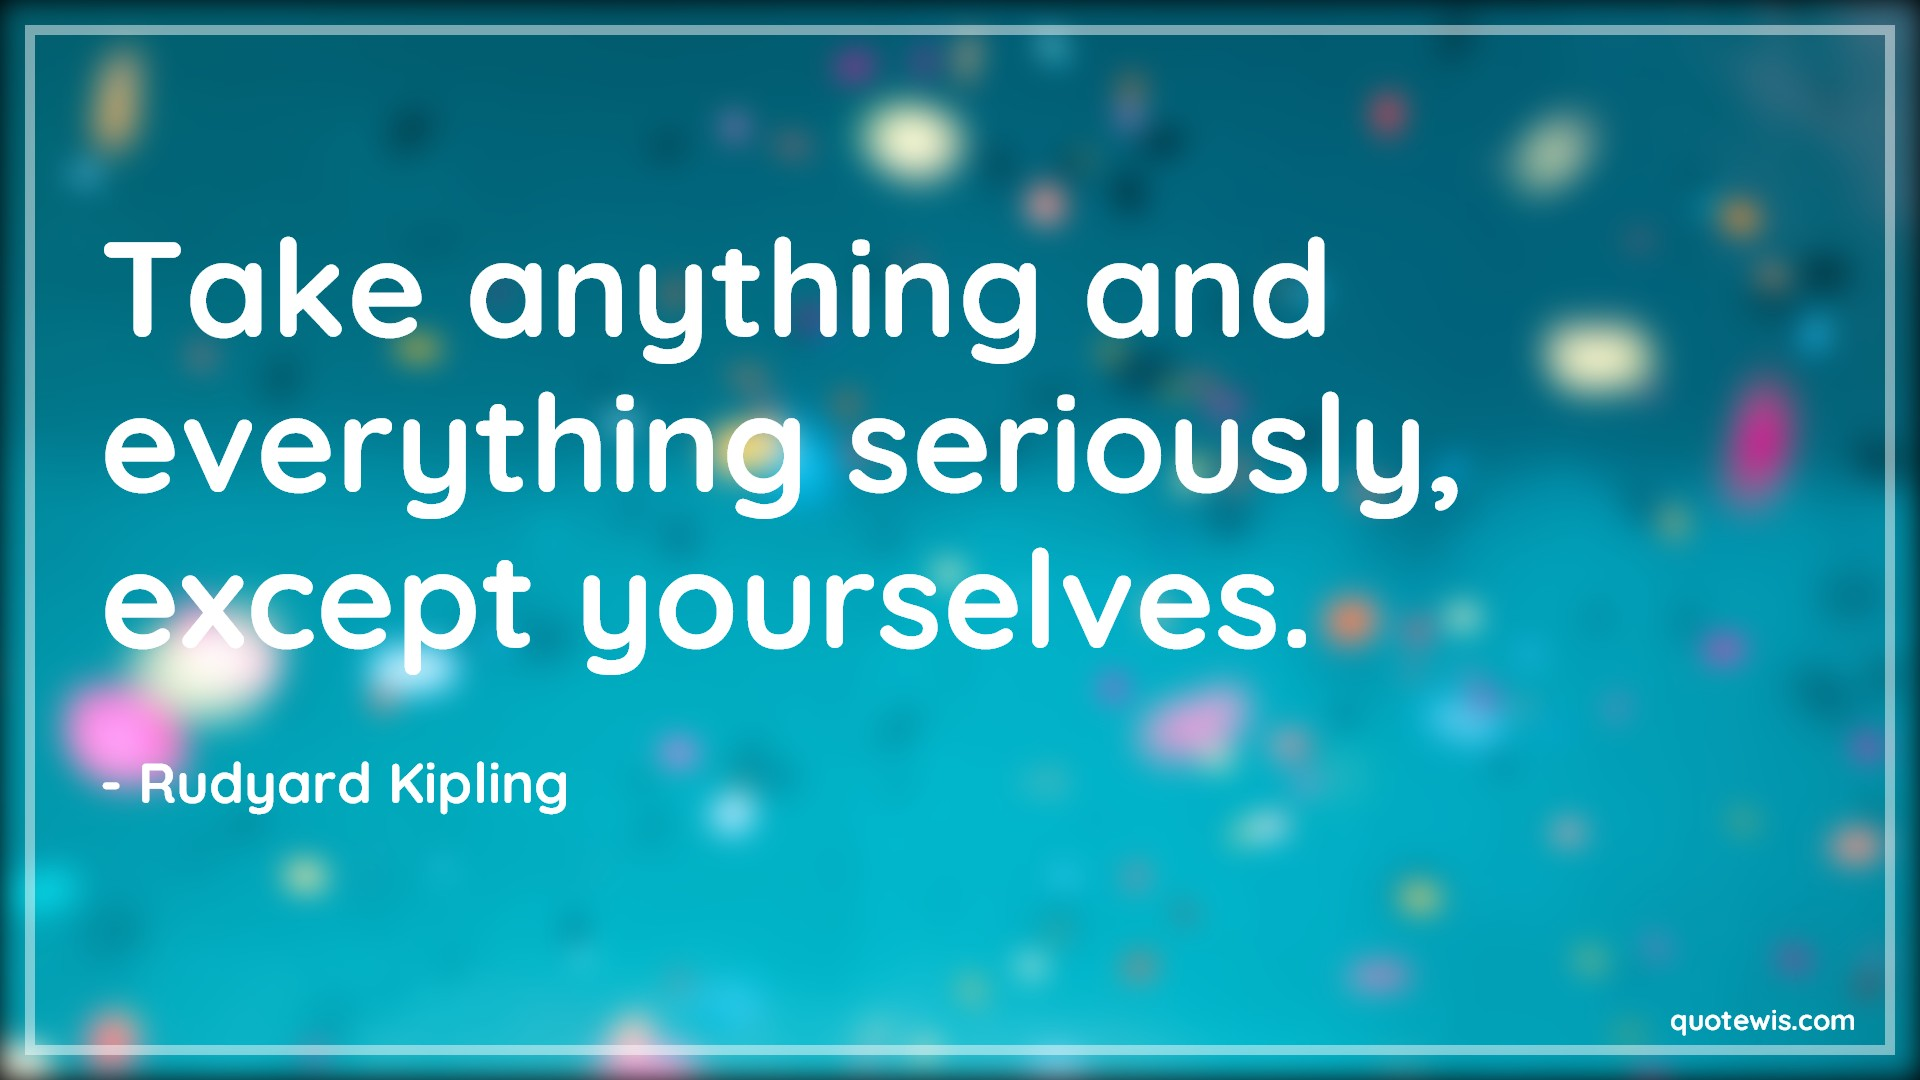 Take anything and everything seriously, except yourselves.